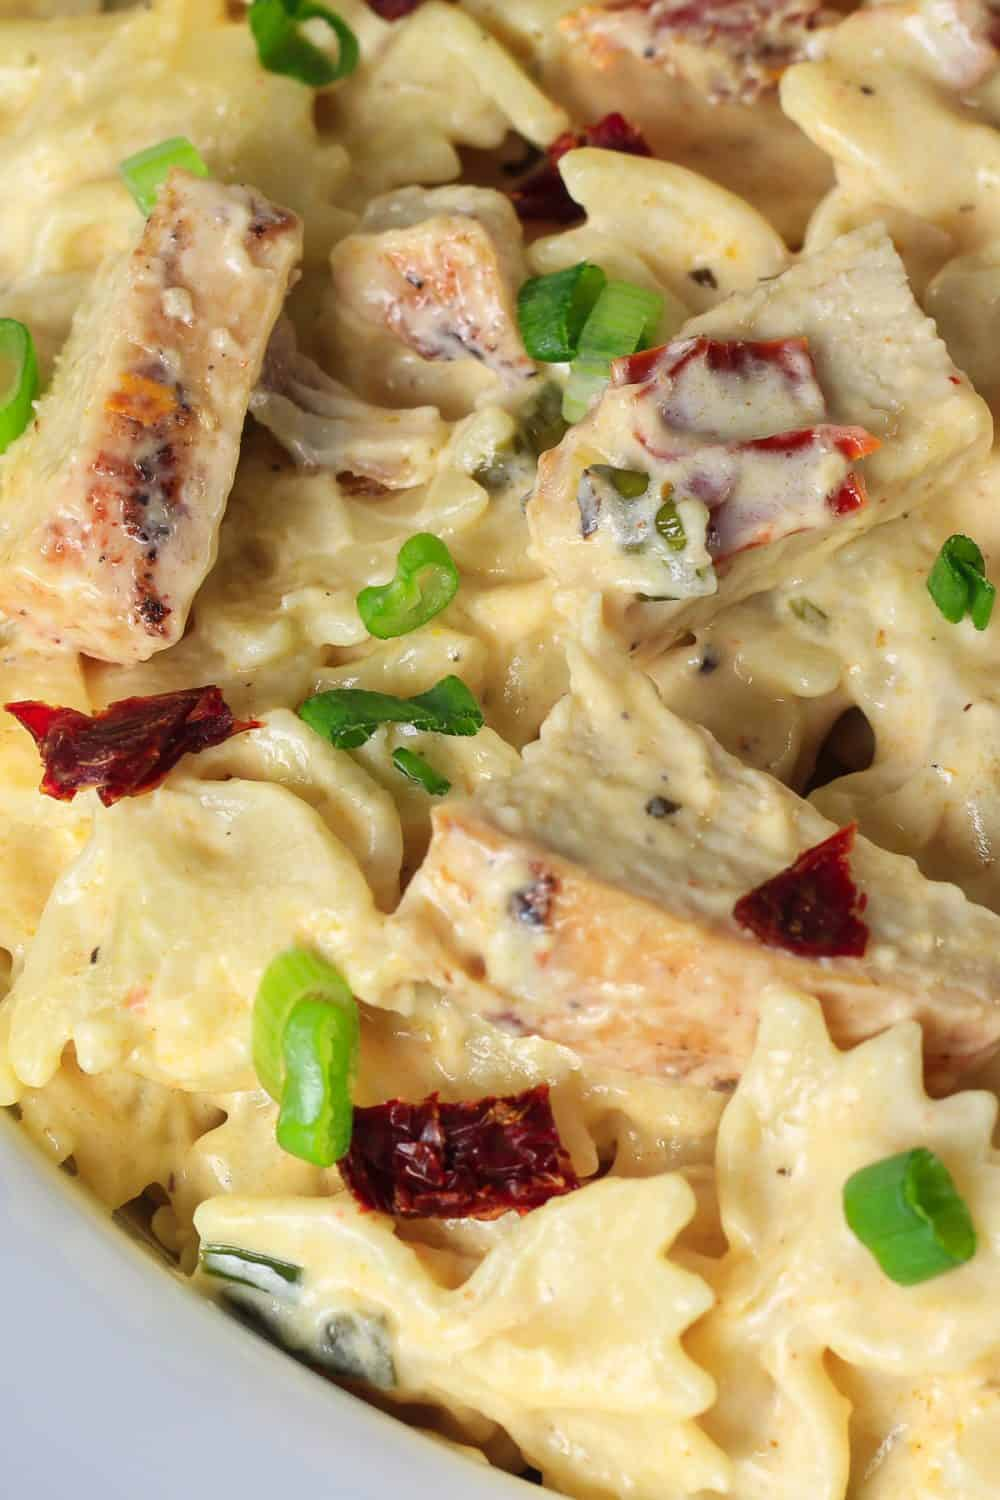 Creamy blackened alfredo pasta with grilled chicken green onion and sun-dried tomatoes on top.